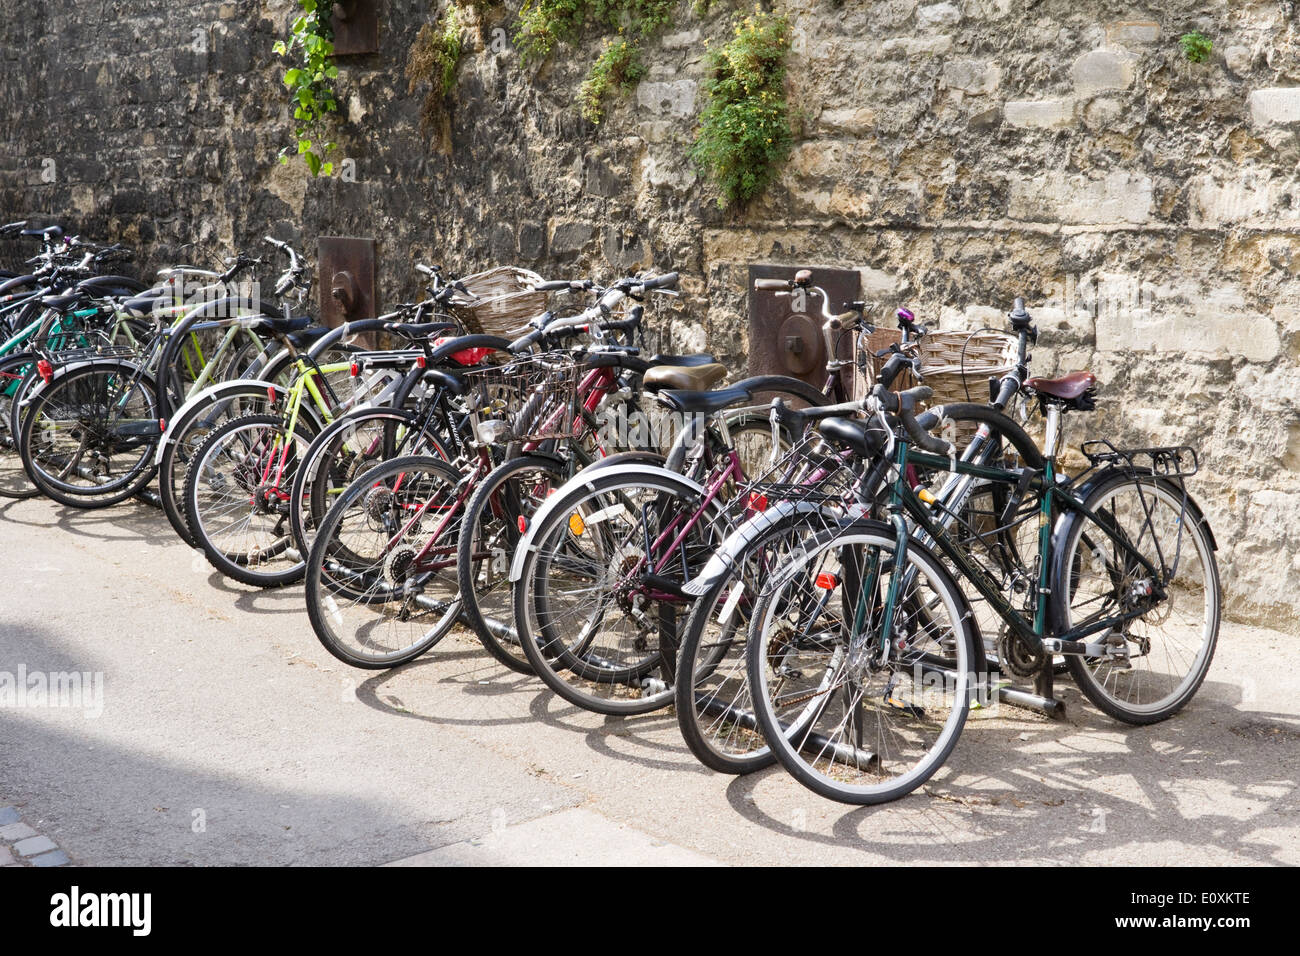 Views of the historic university city of Oxford Oxfordshire England UK  Bicycles on Brasenose Lane - Stock Image